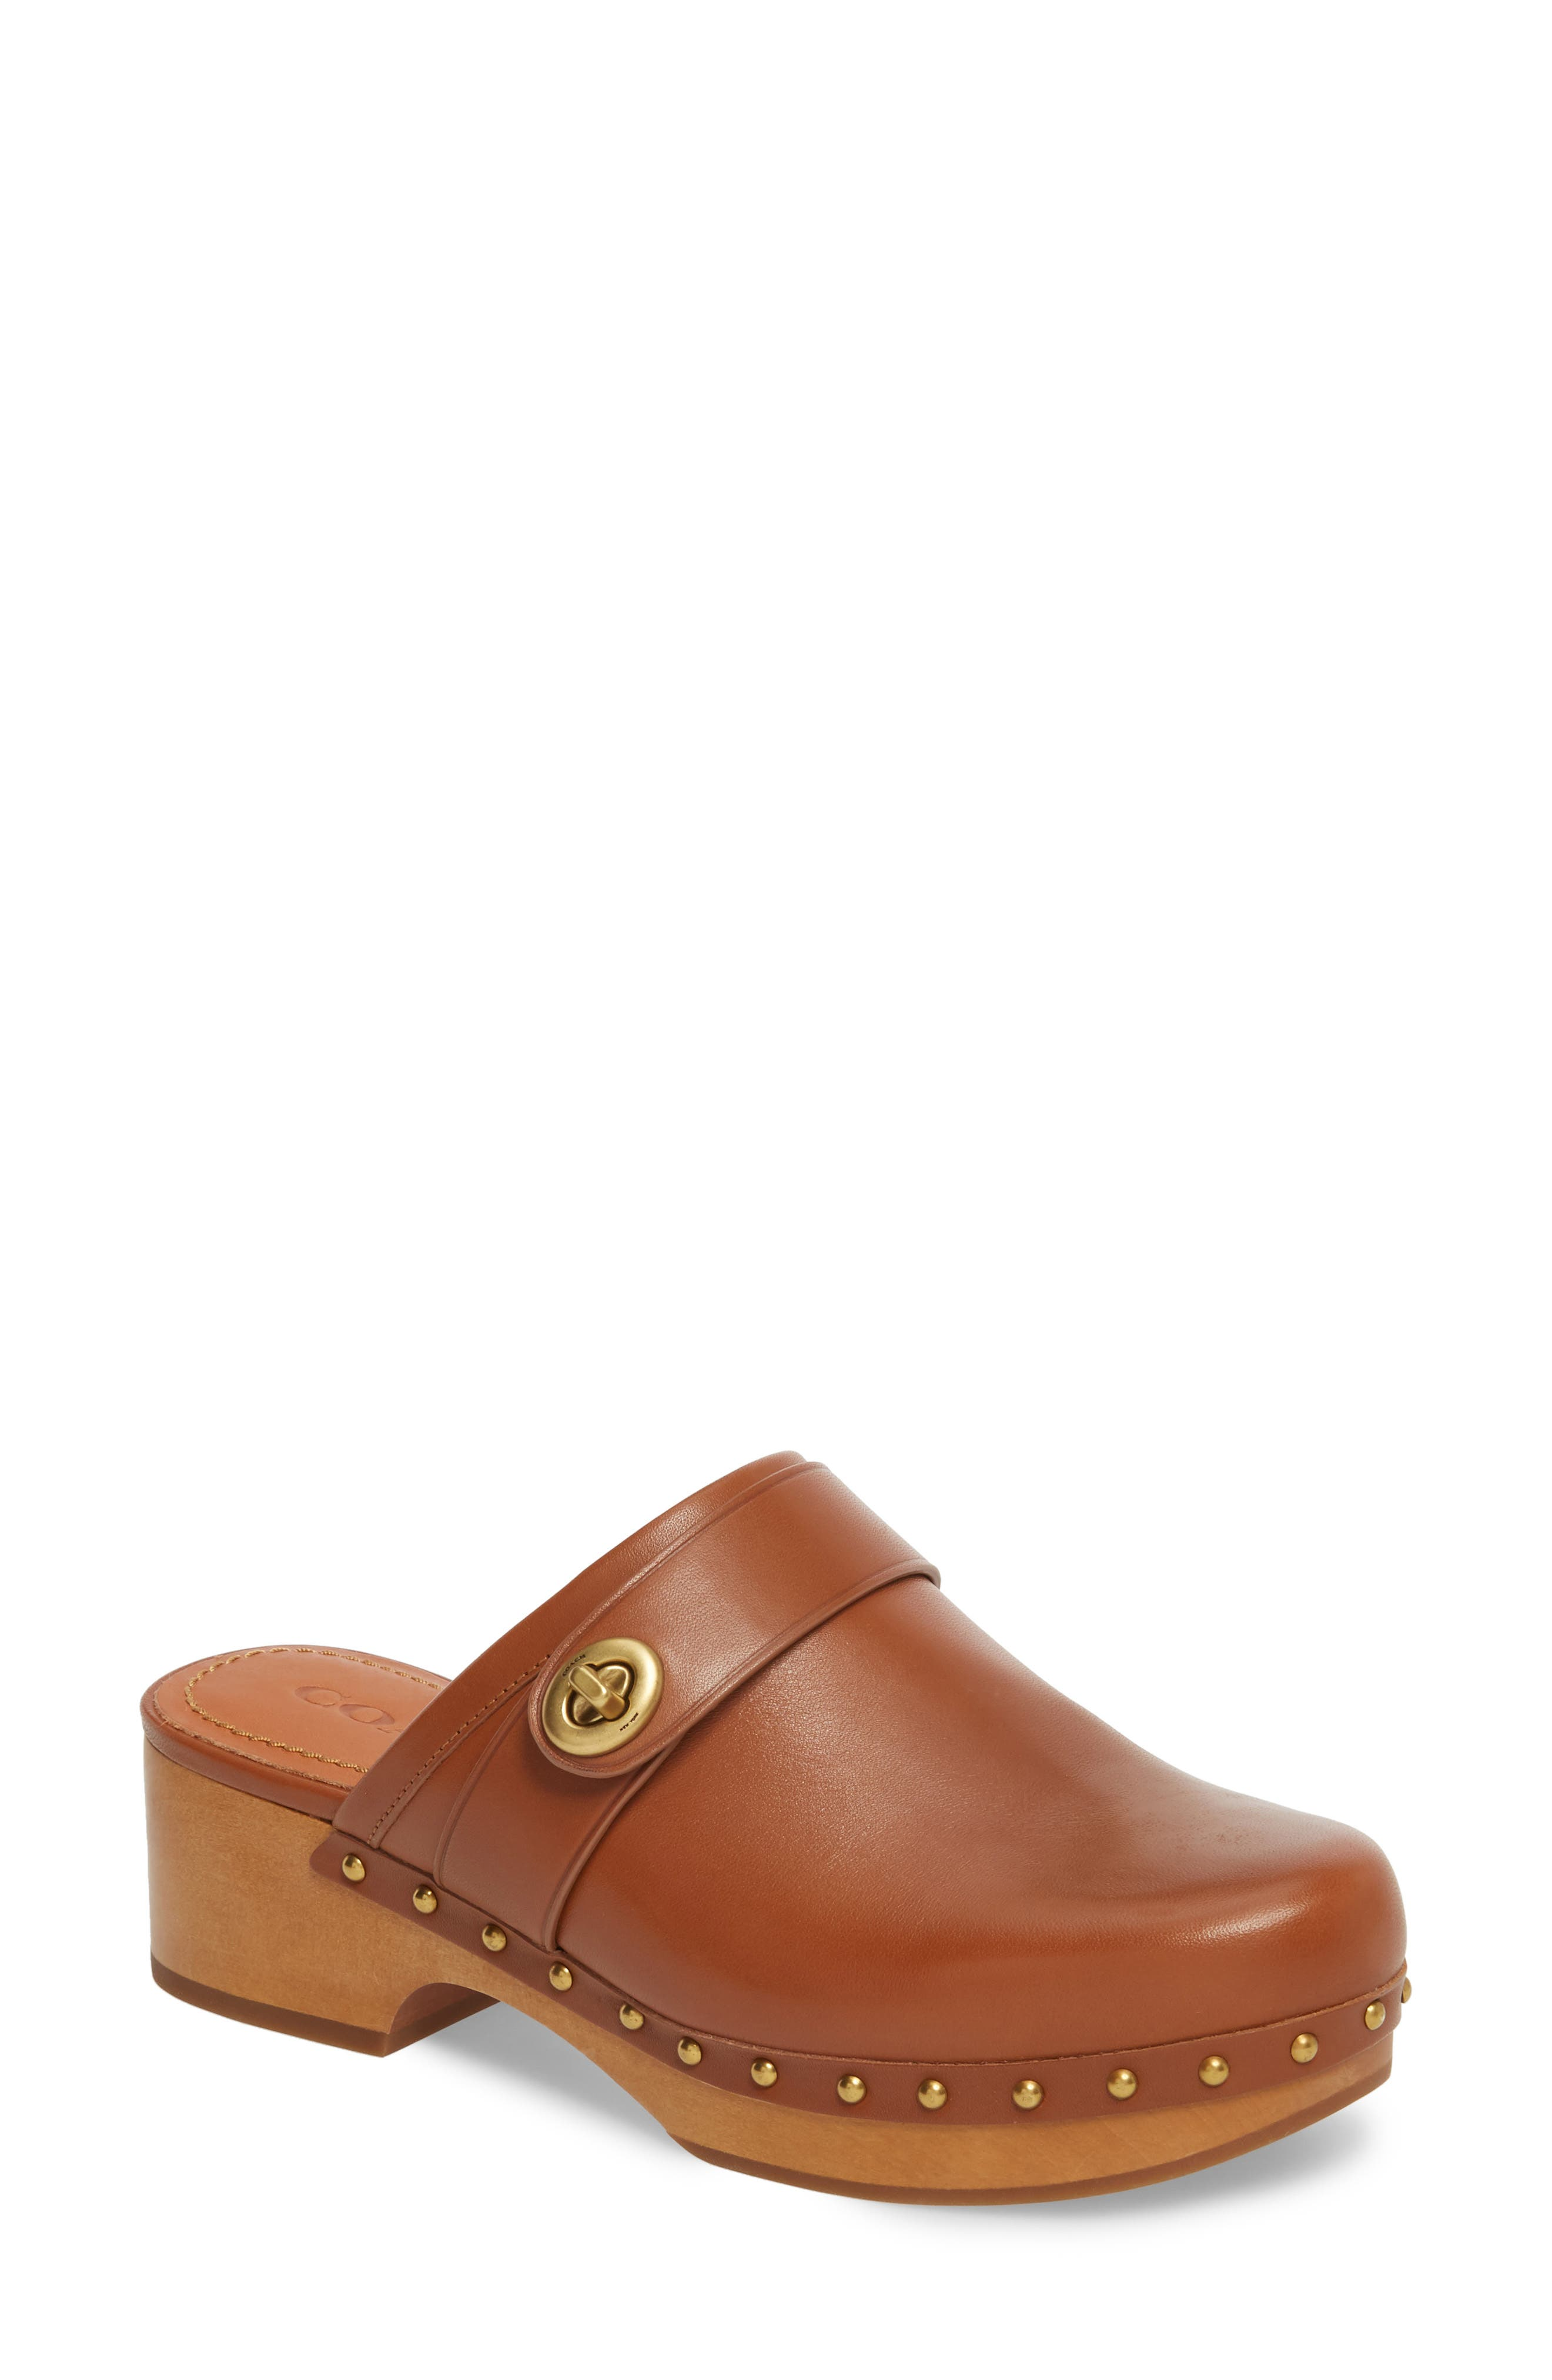 Turnlock Clog,                         Main,                         color, Saddle Leather